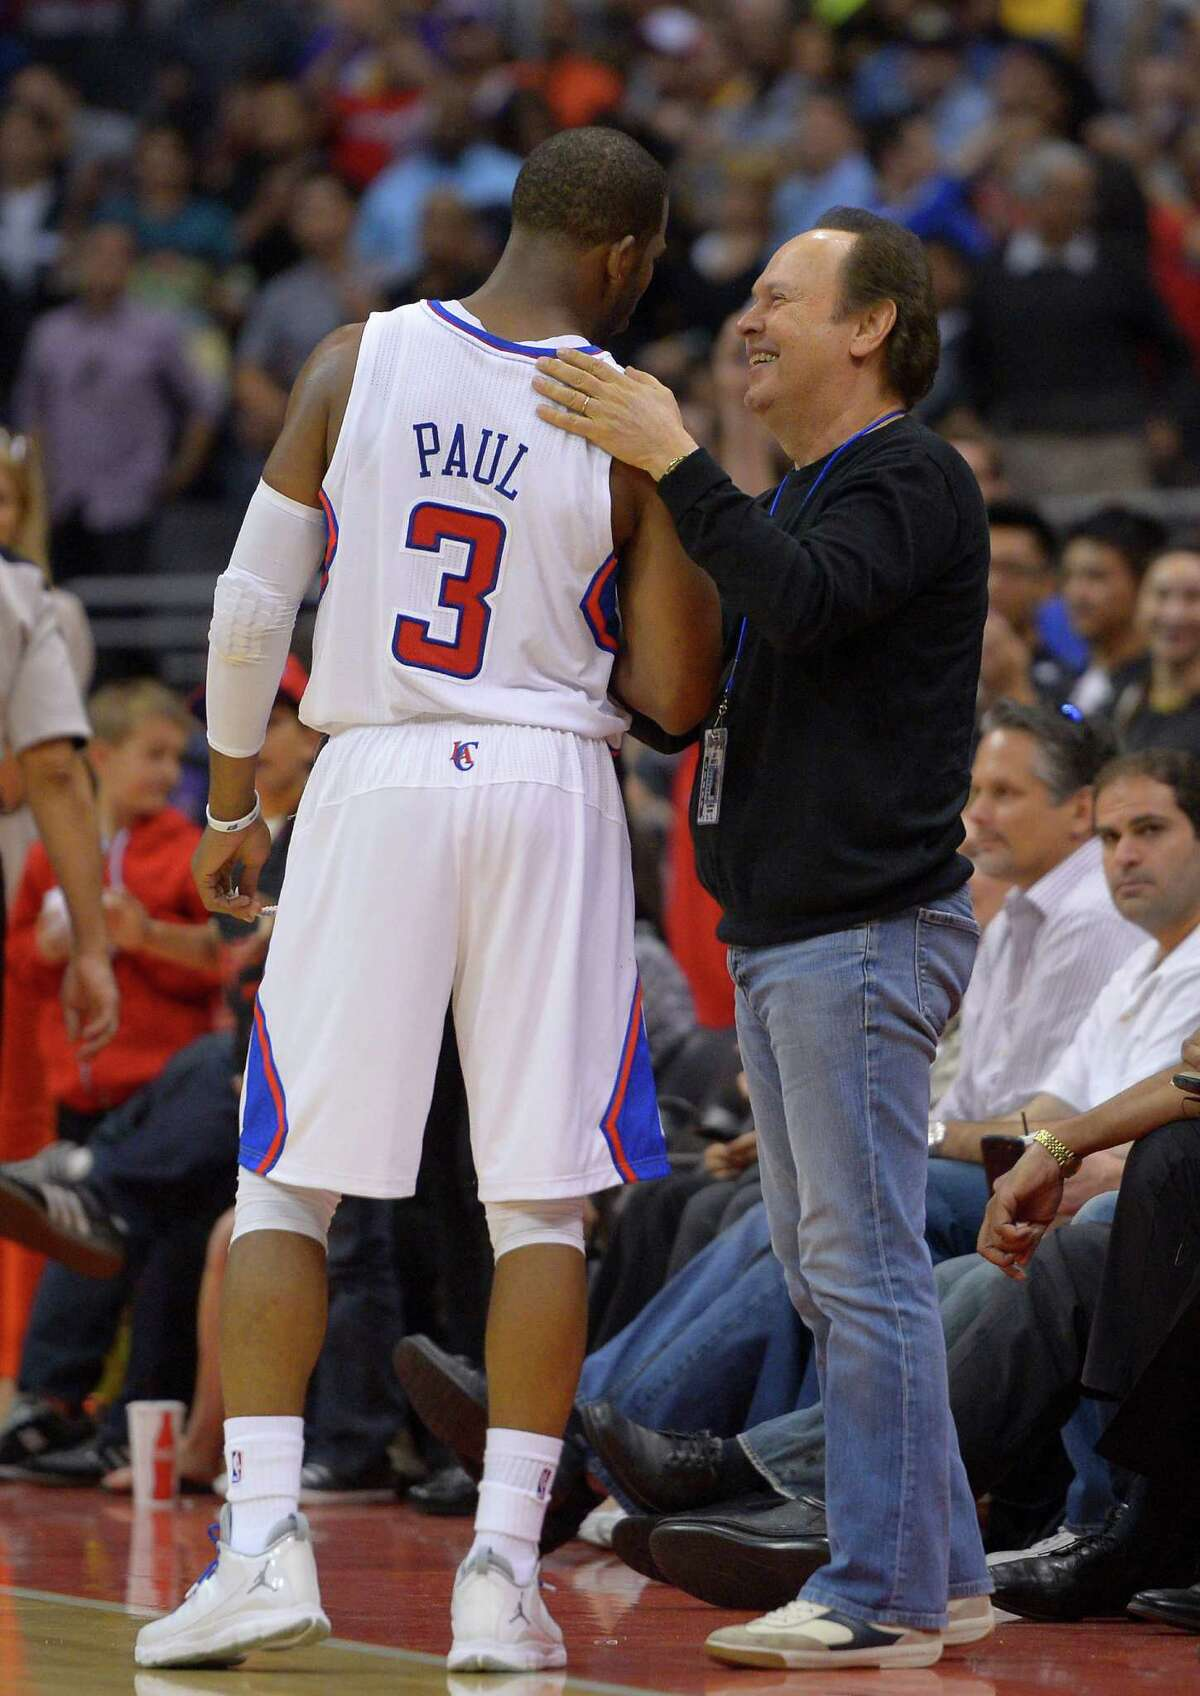 Actor Billy Crystal, who was a Clippers fan even during the team's lengthy down times, congratulates Chris Paul during the closing seconds Sunday.